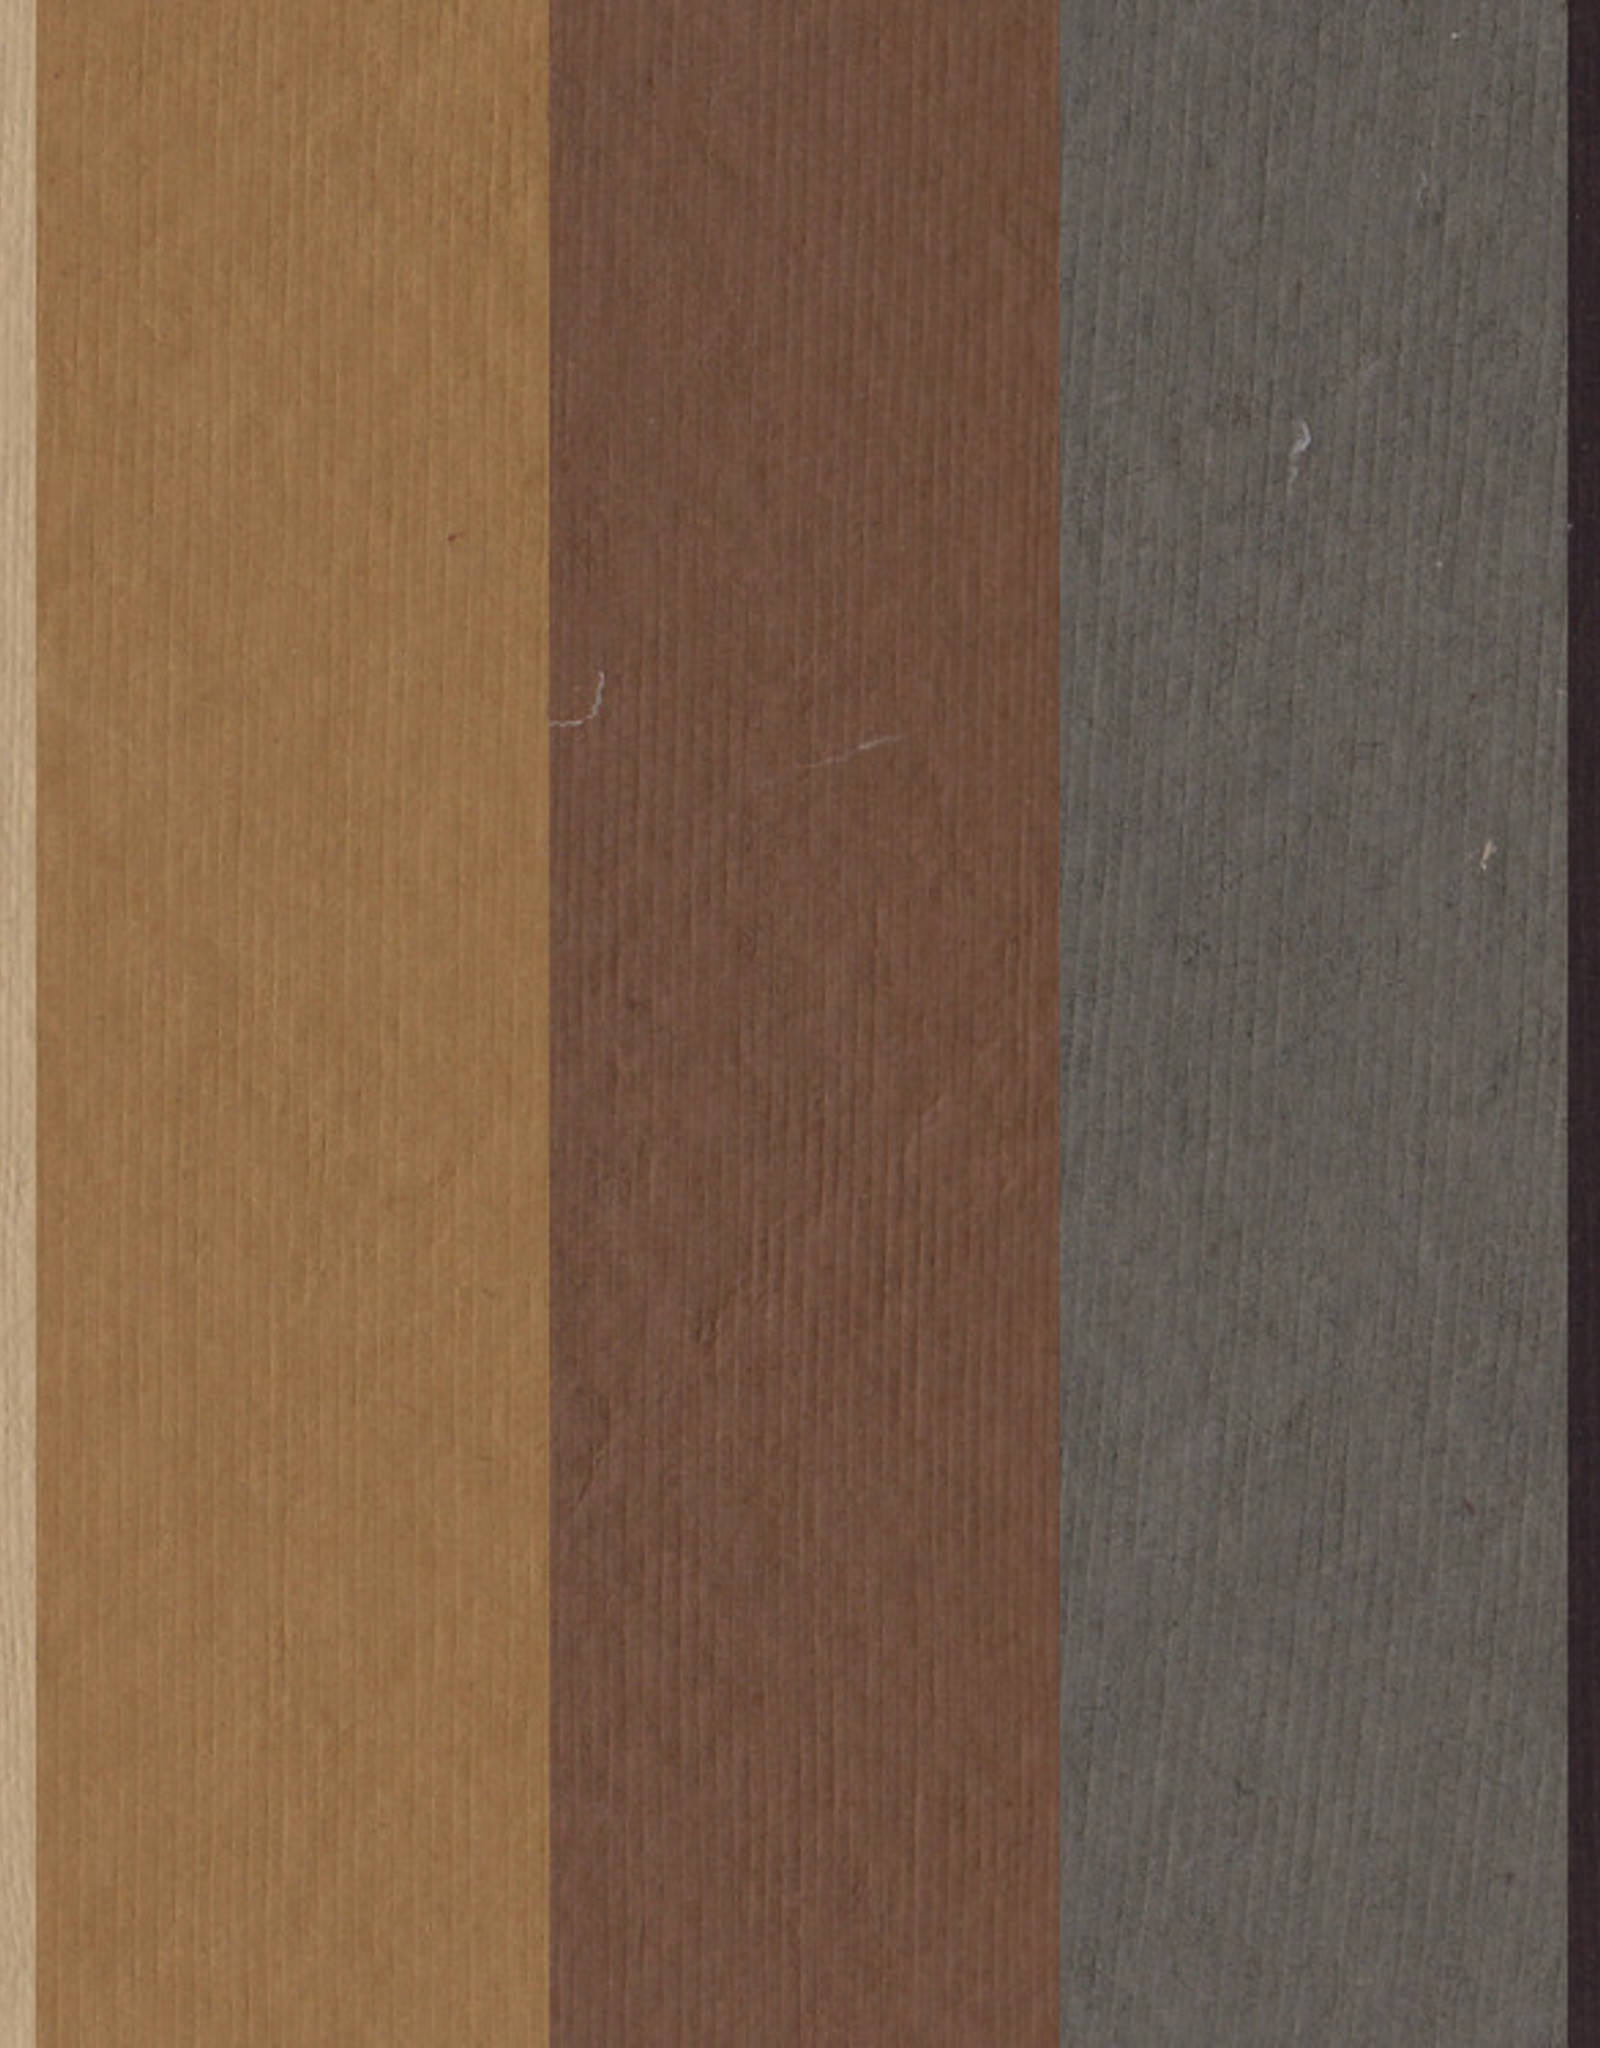 "Pastel Paper Multi-Natural Pack, 9"" x 12"", 25 Sheets, 5 Sheets of Each Color"